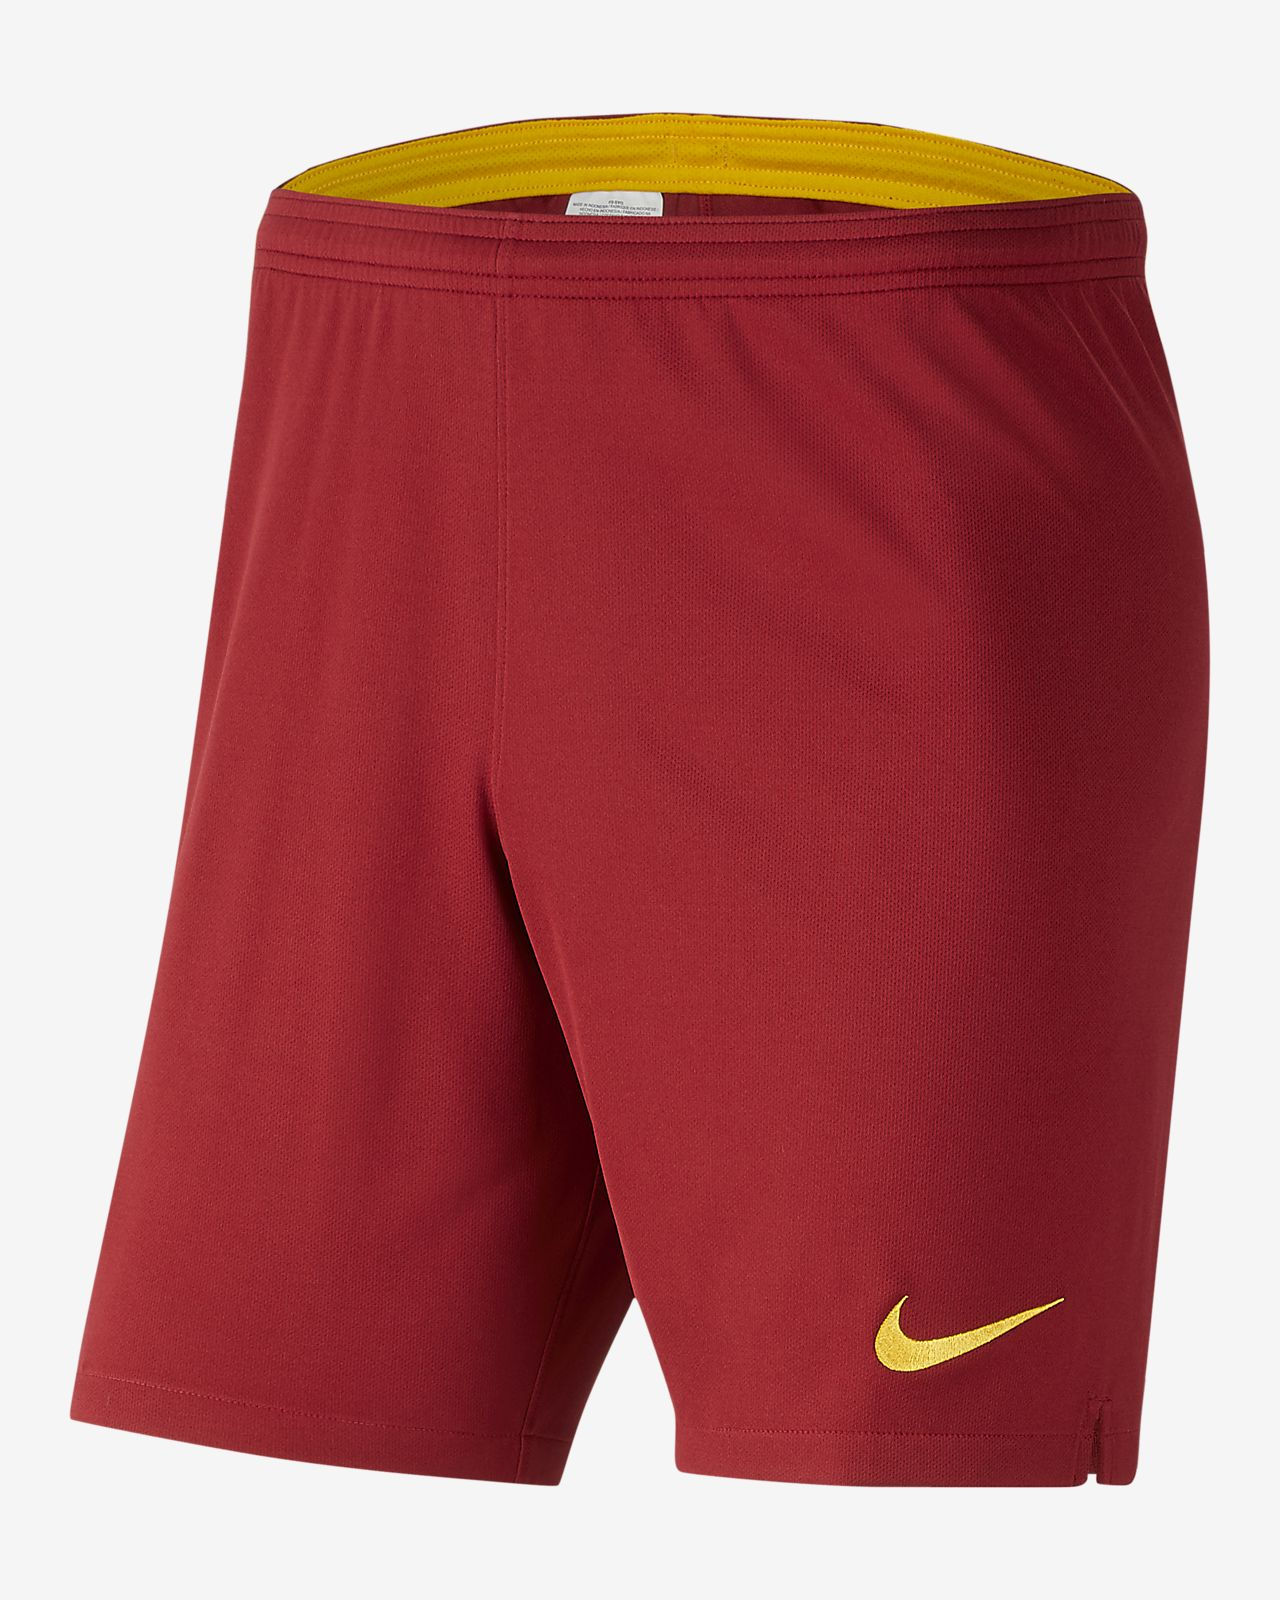 A.S. Roma 2019/20 Stadium Home/Away Men's Football Shorts